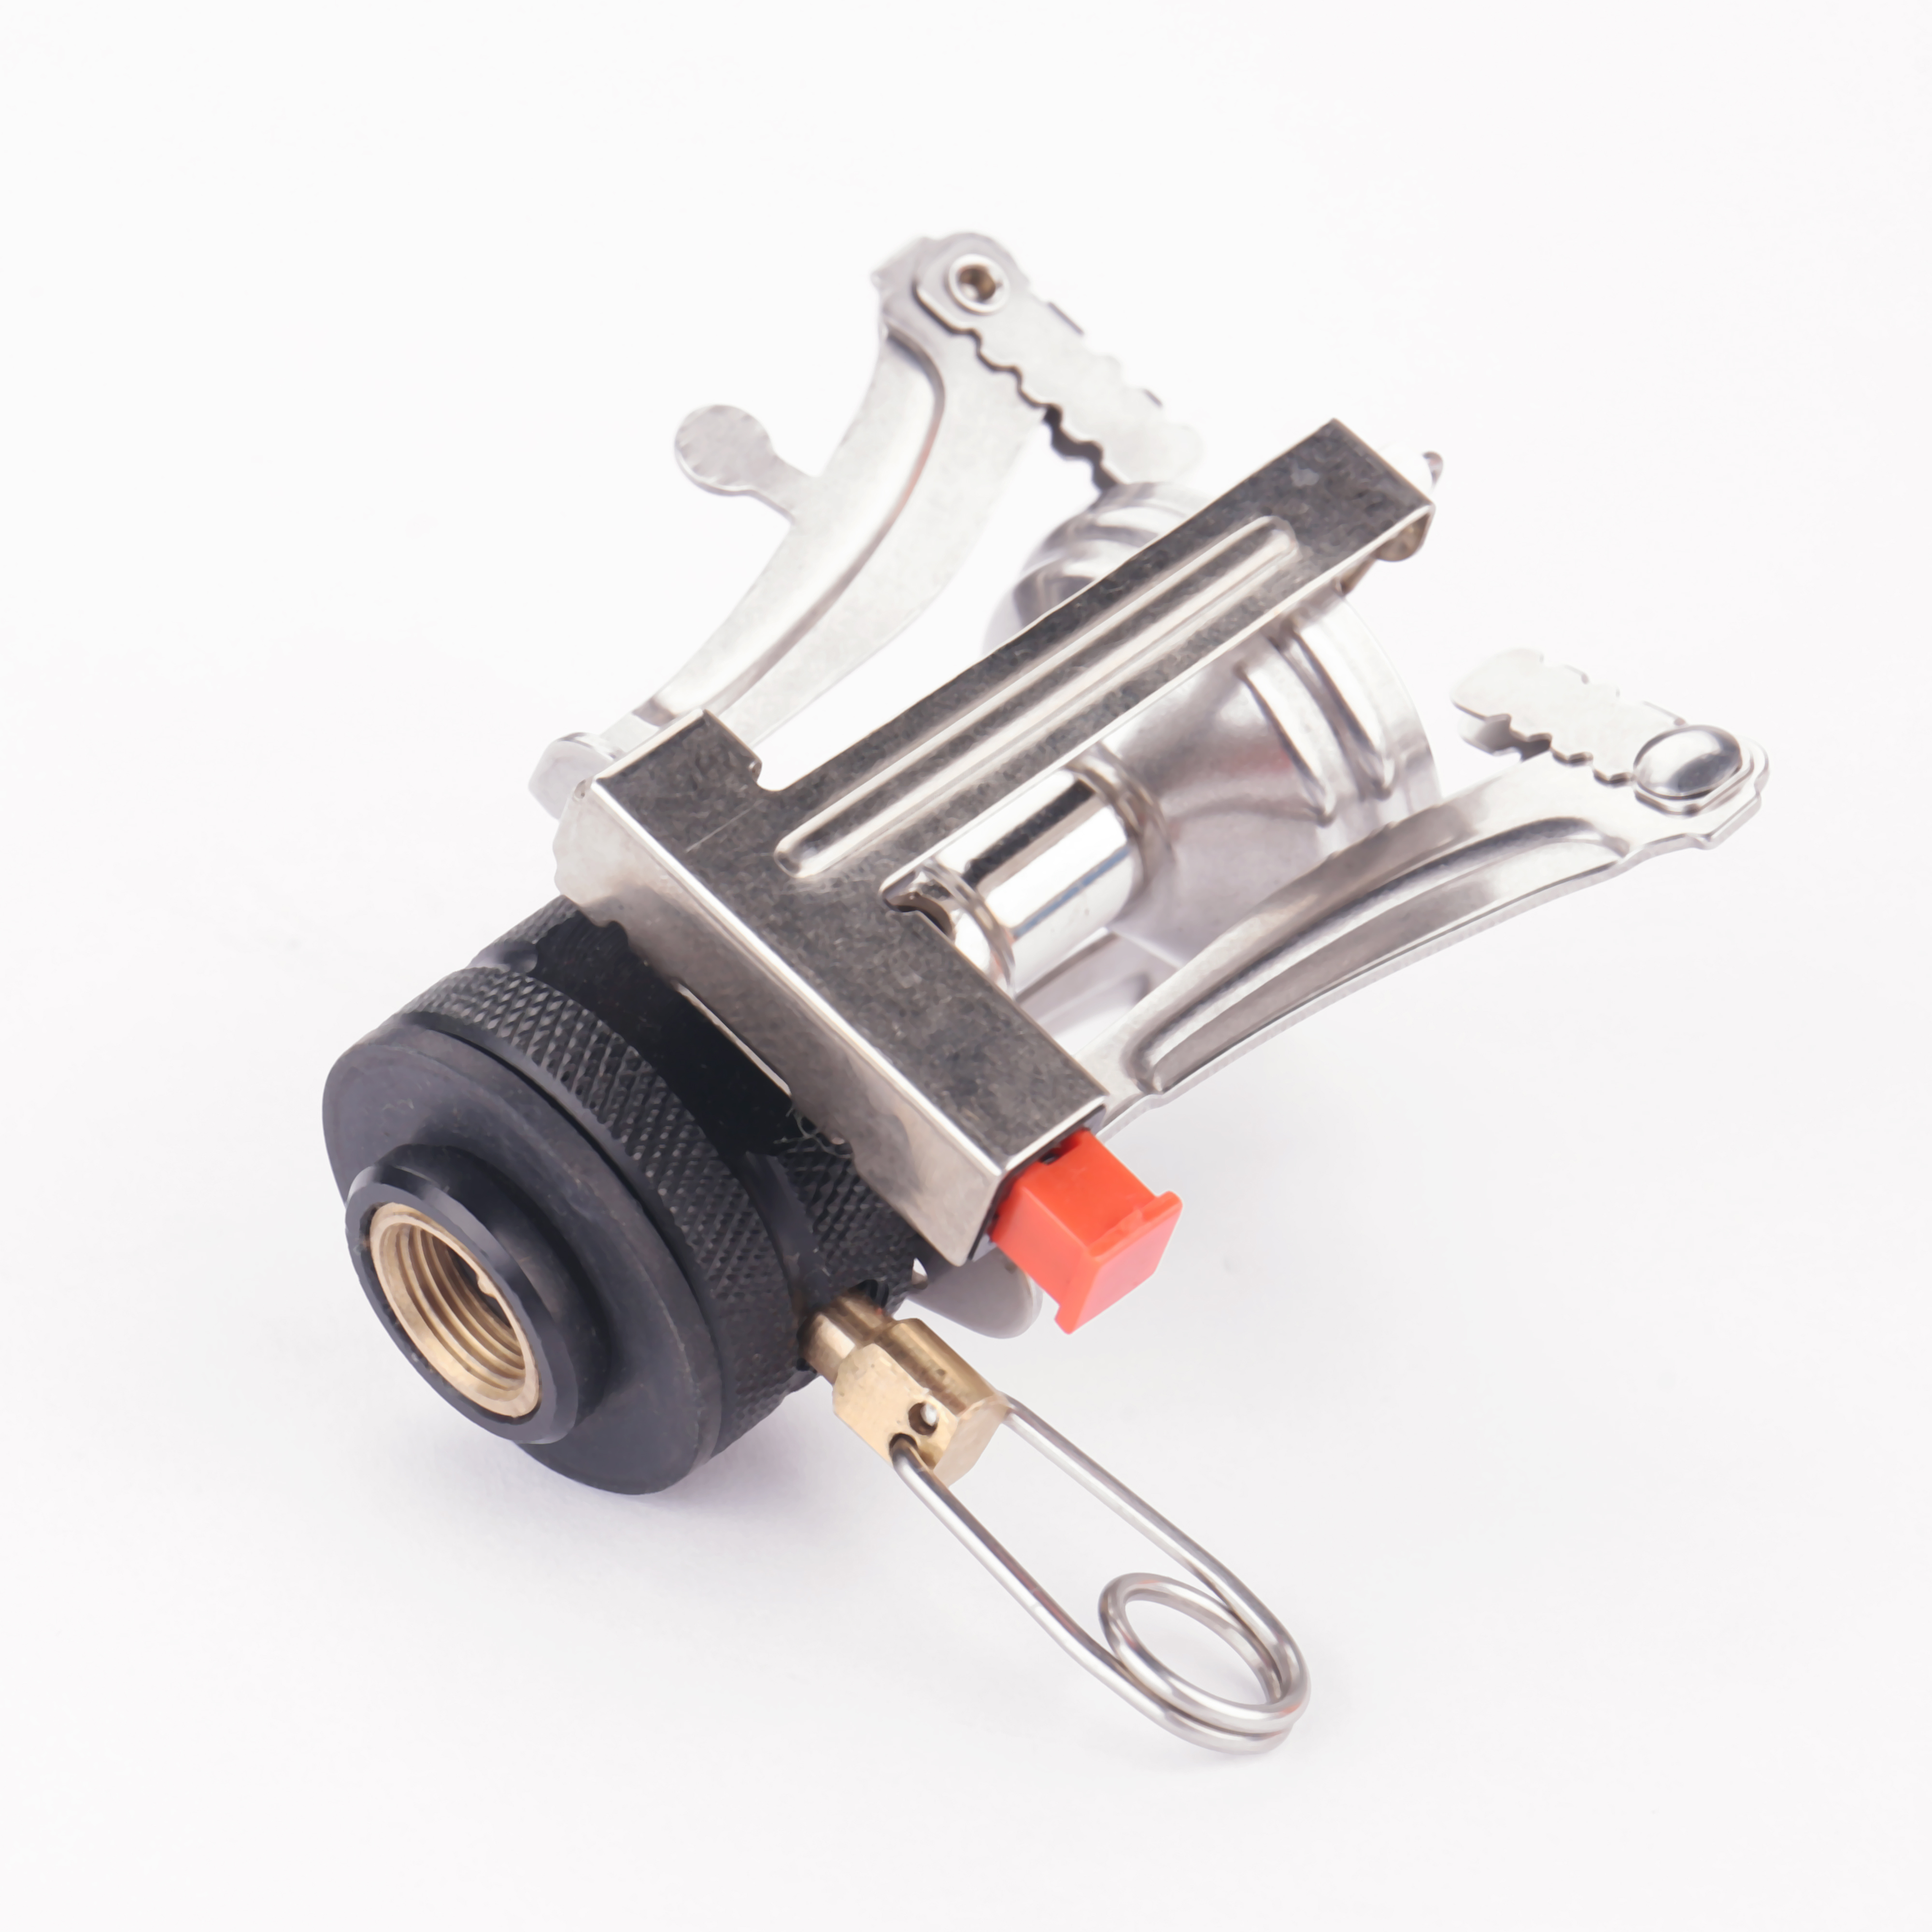 New Arrival Portable Butane Camping Gas Cooker mini gas stoves camping barbecue stove for outdoor hiking